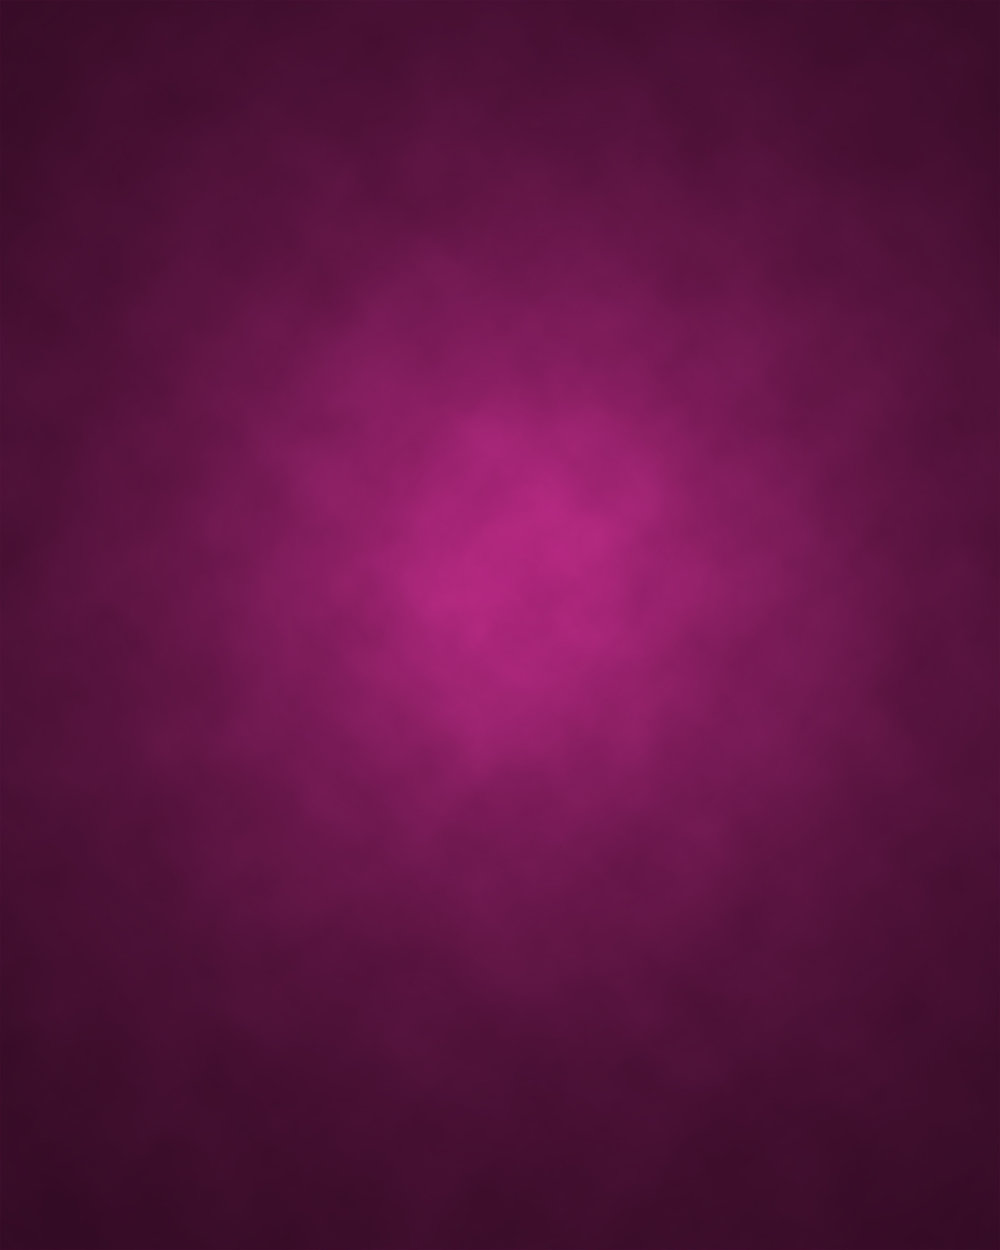 Background Option #5 - Magenta